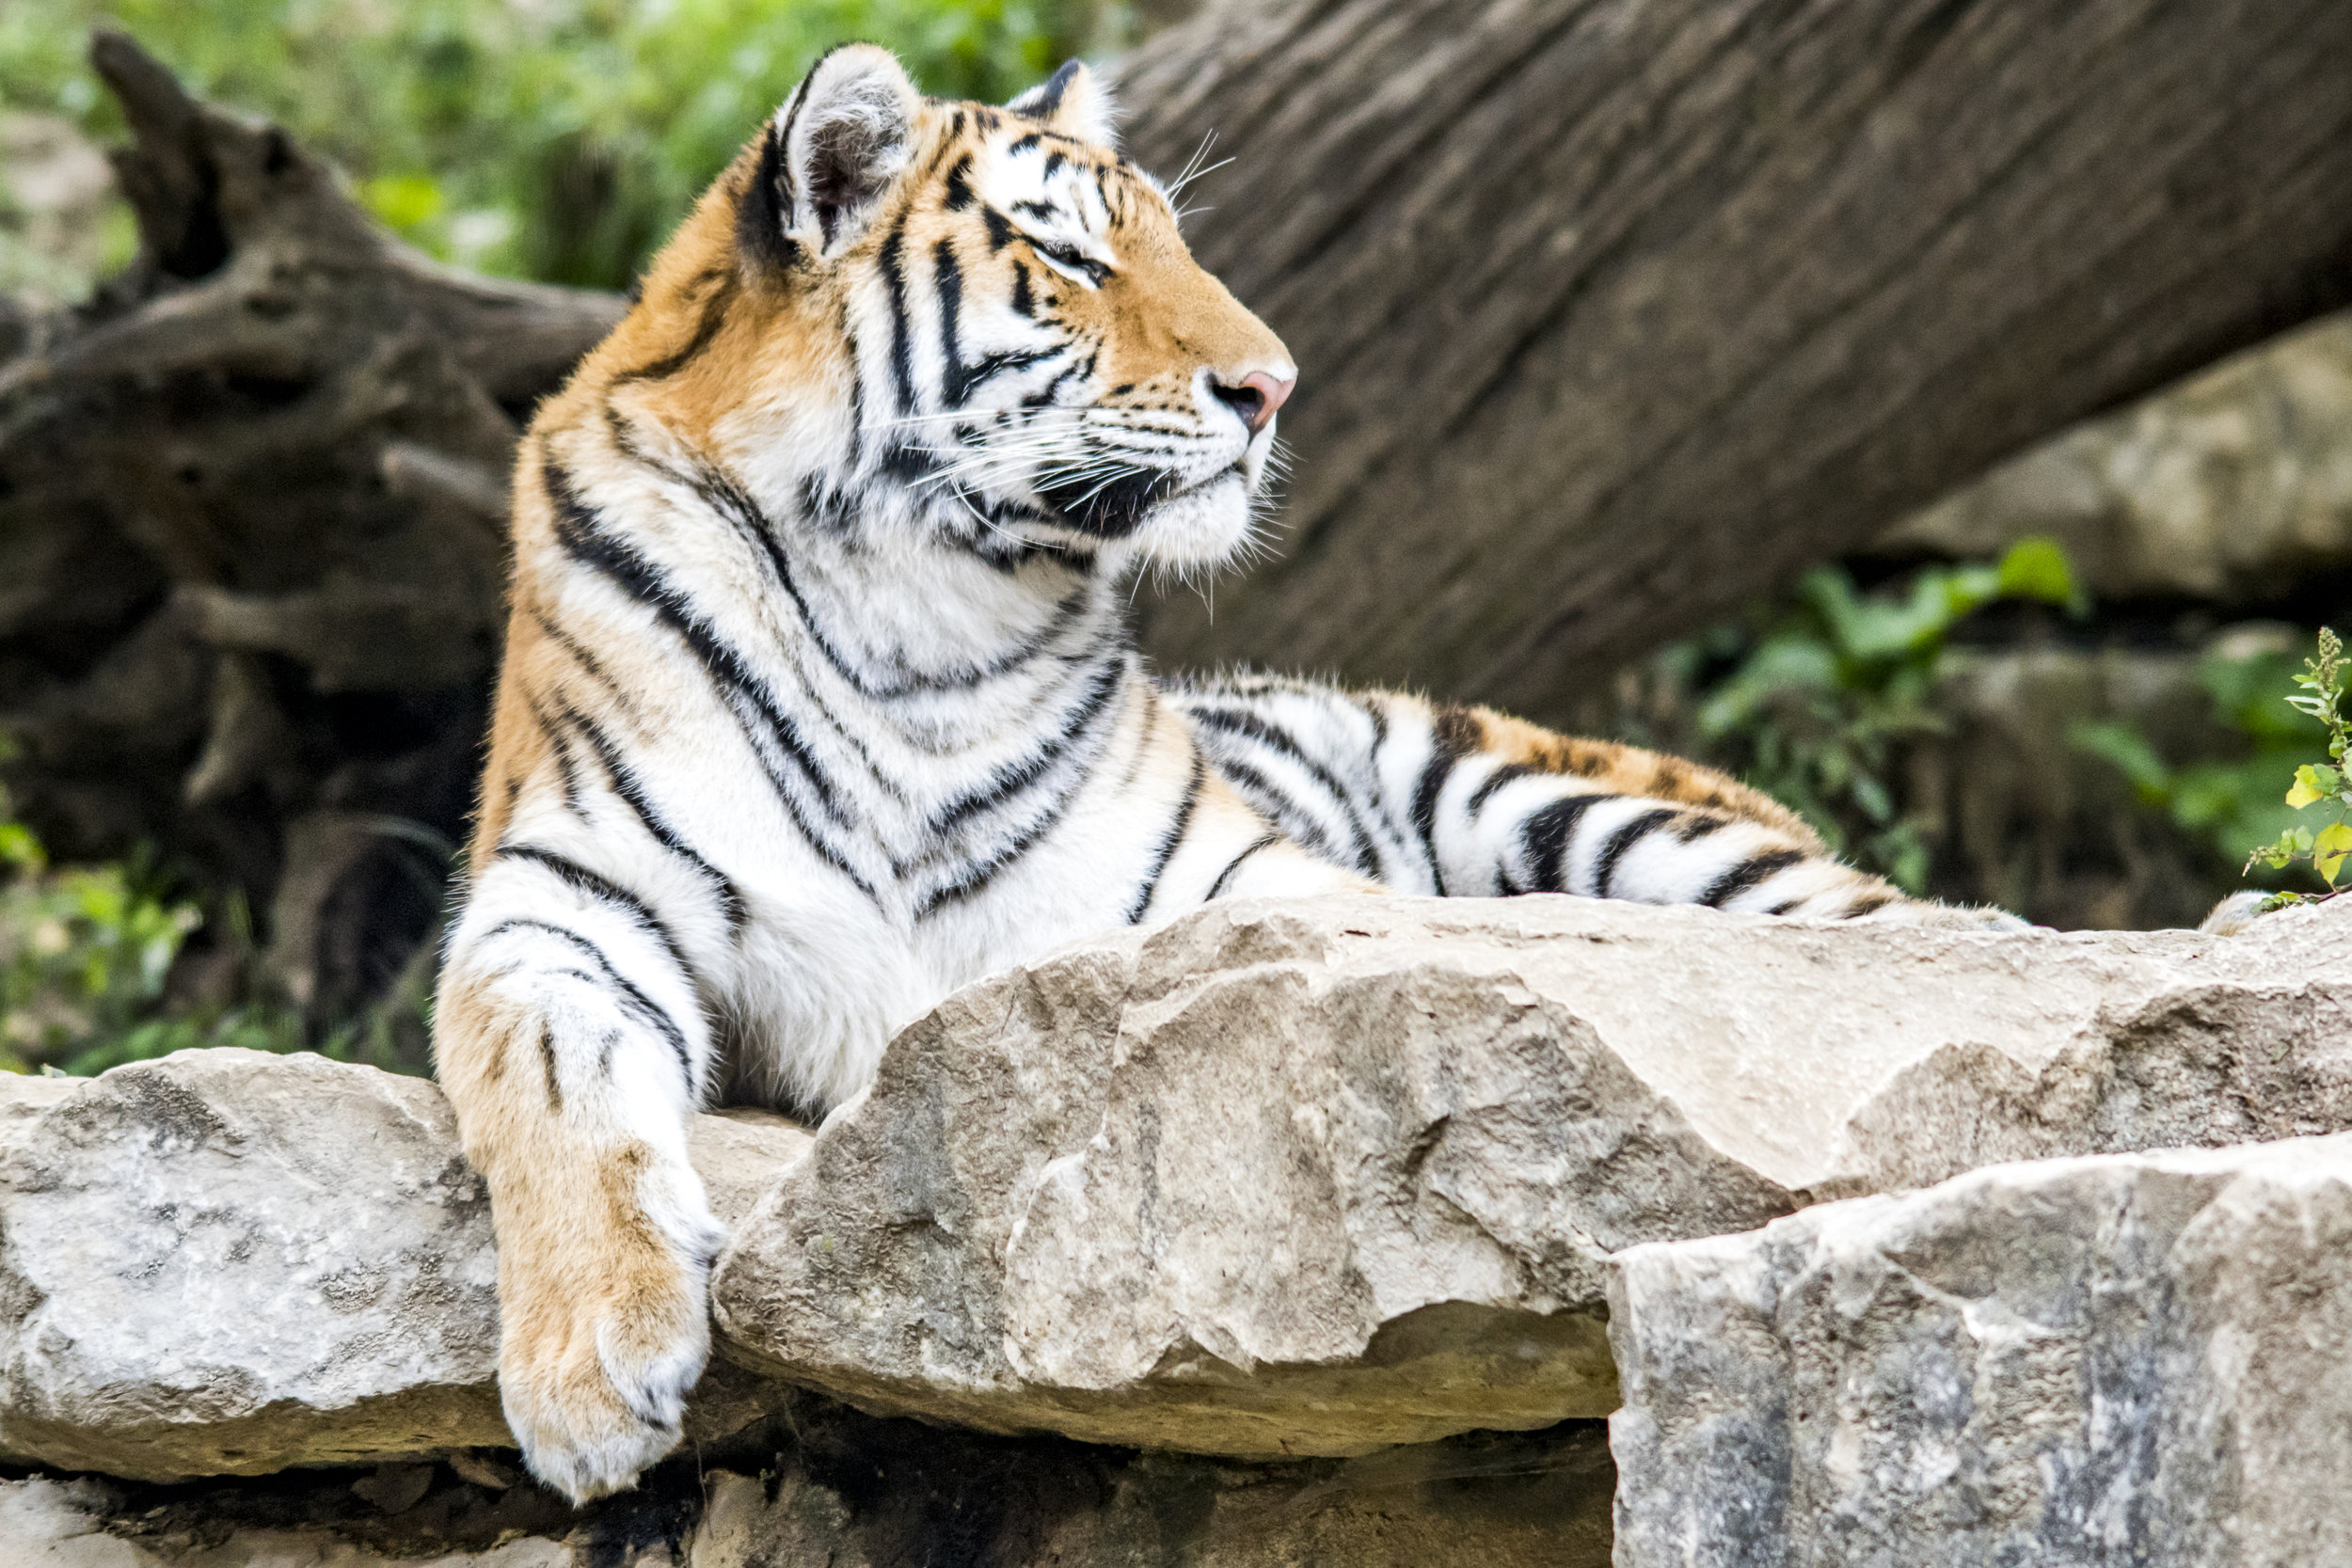 """The Tiger is the largest Asian """"Big Cat,"""" and the only one with stripes. It is also one of only """"Big Cats"""" that is a keen swimmer, and seems to like water. It is, however, endangered and needs our protection!  (Omaha Zoo)"""